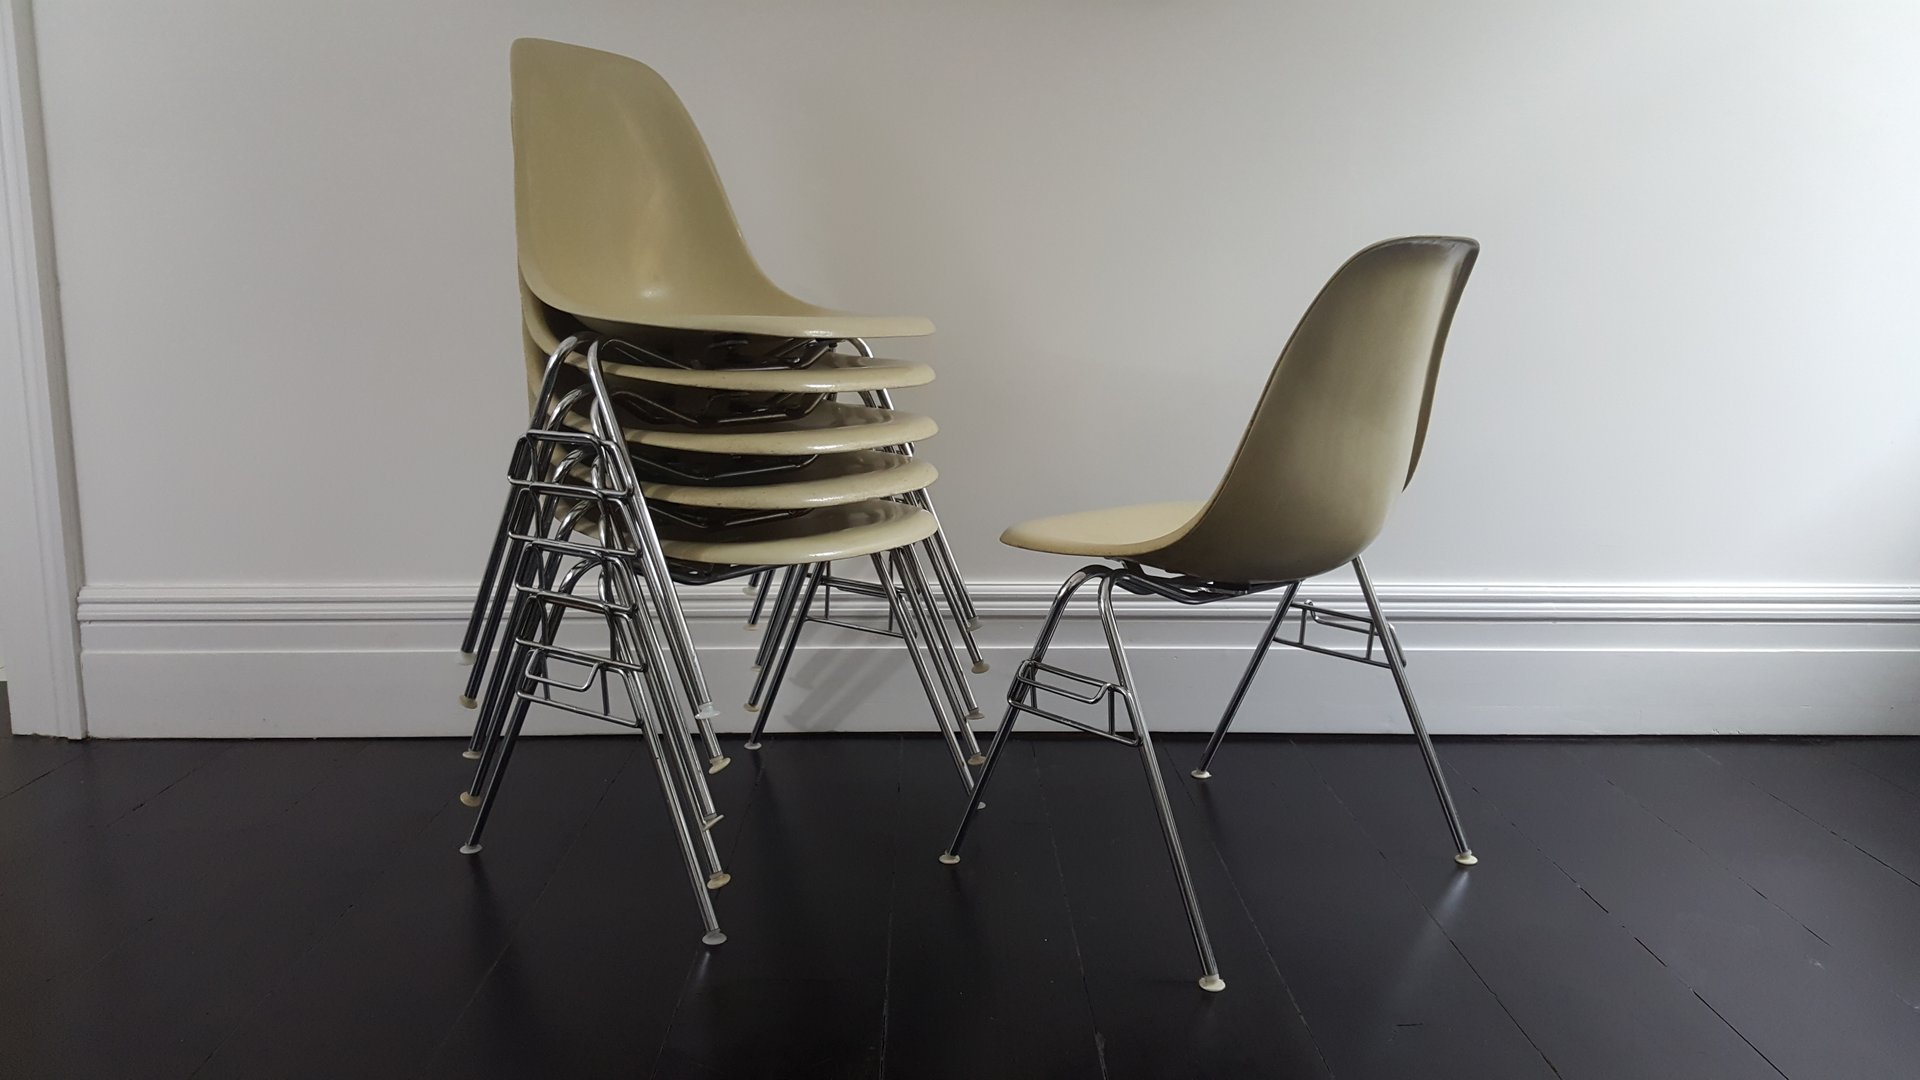 Vintage DSS Fiberglass Shell Chair by Charles & Ray Eames for